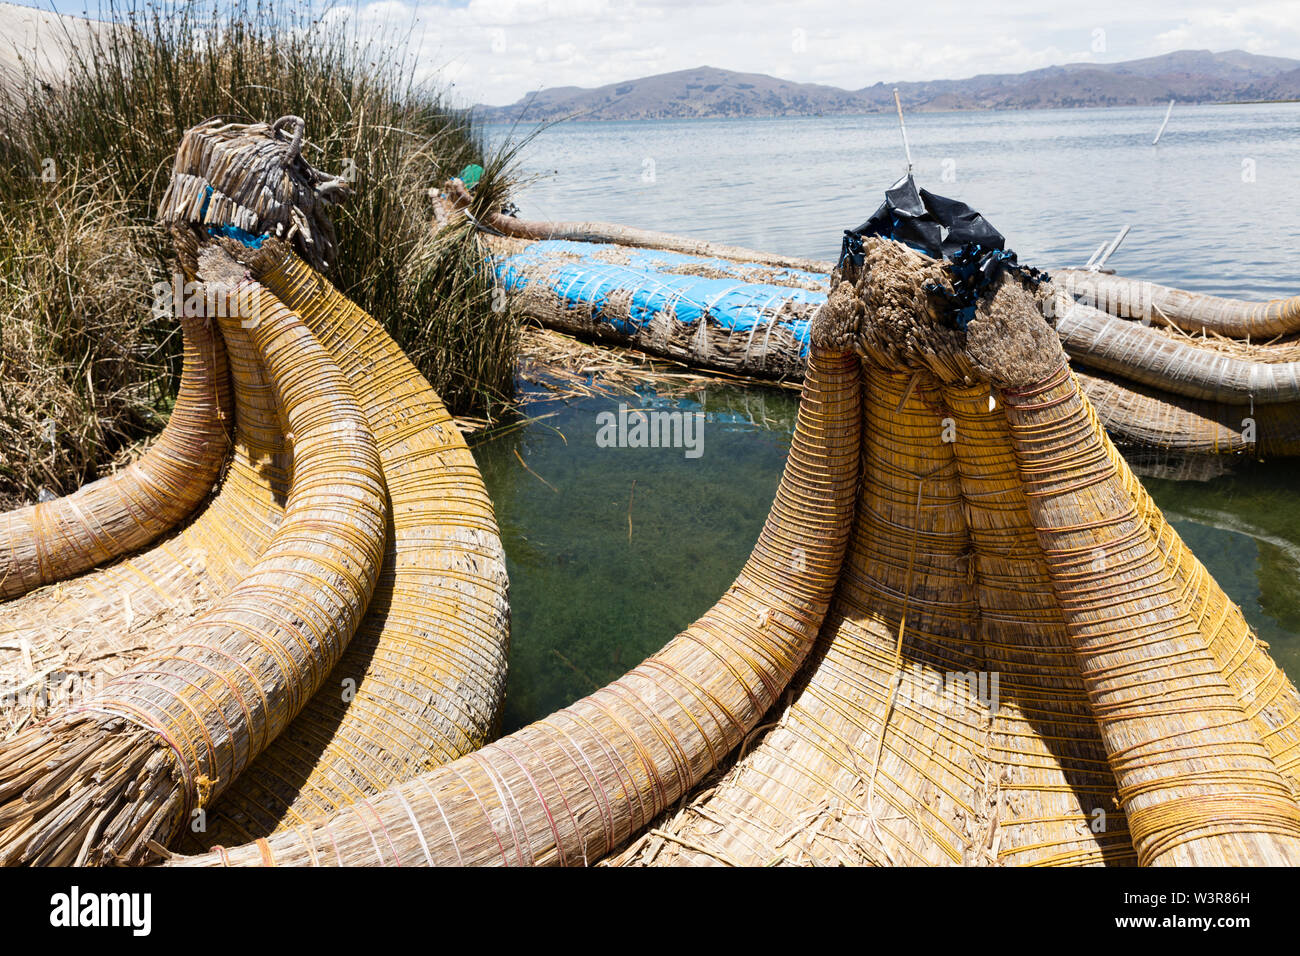 Traditional reed boat (totora) in the Uros Islands, Titicaca Lake or Titikaka Lake, Peru, South America - Stock Image